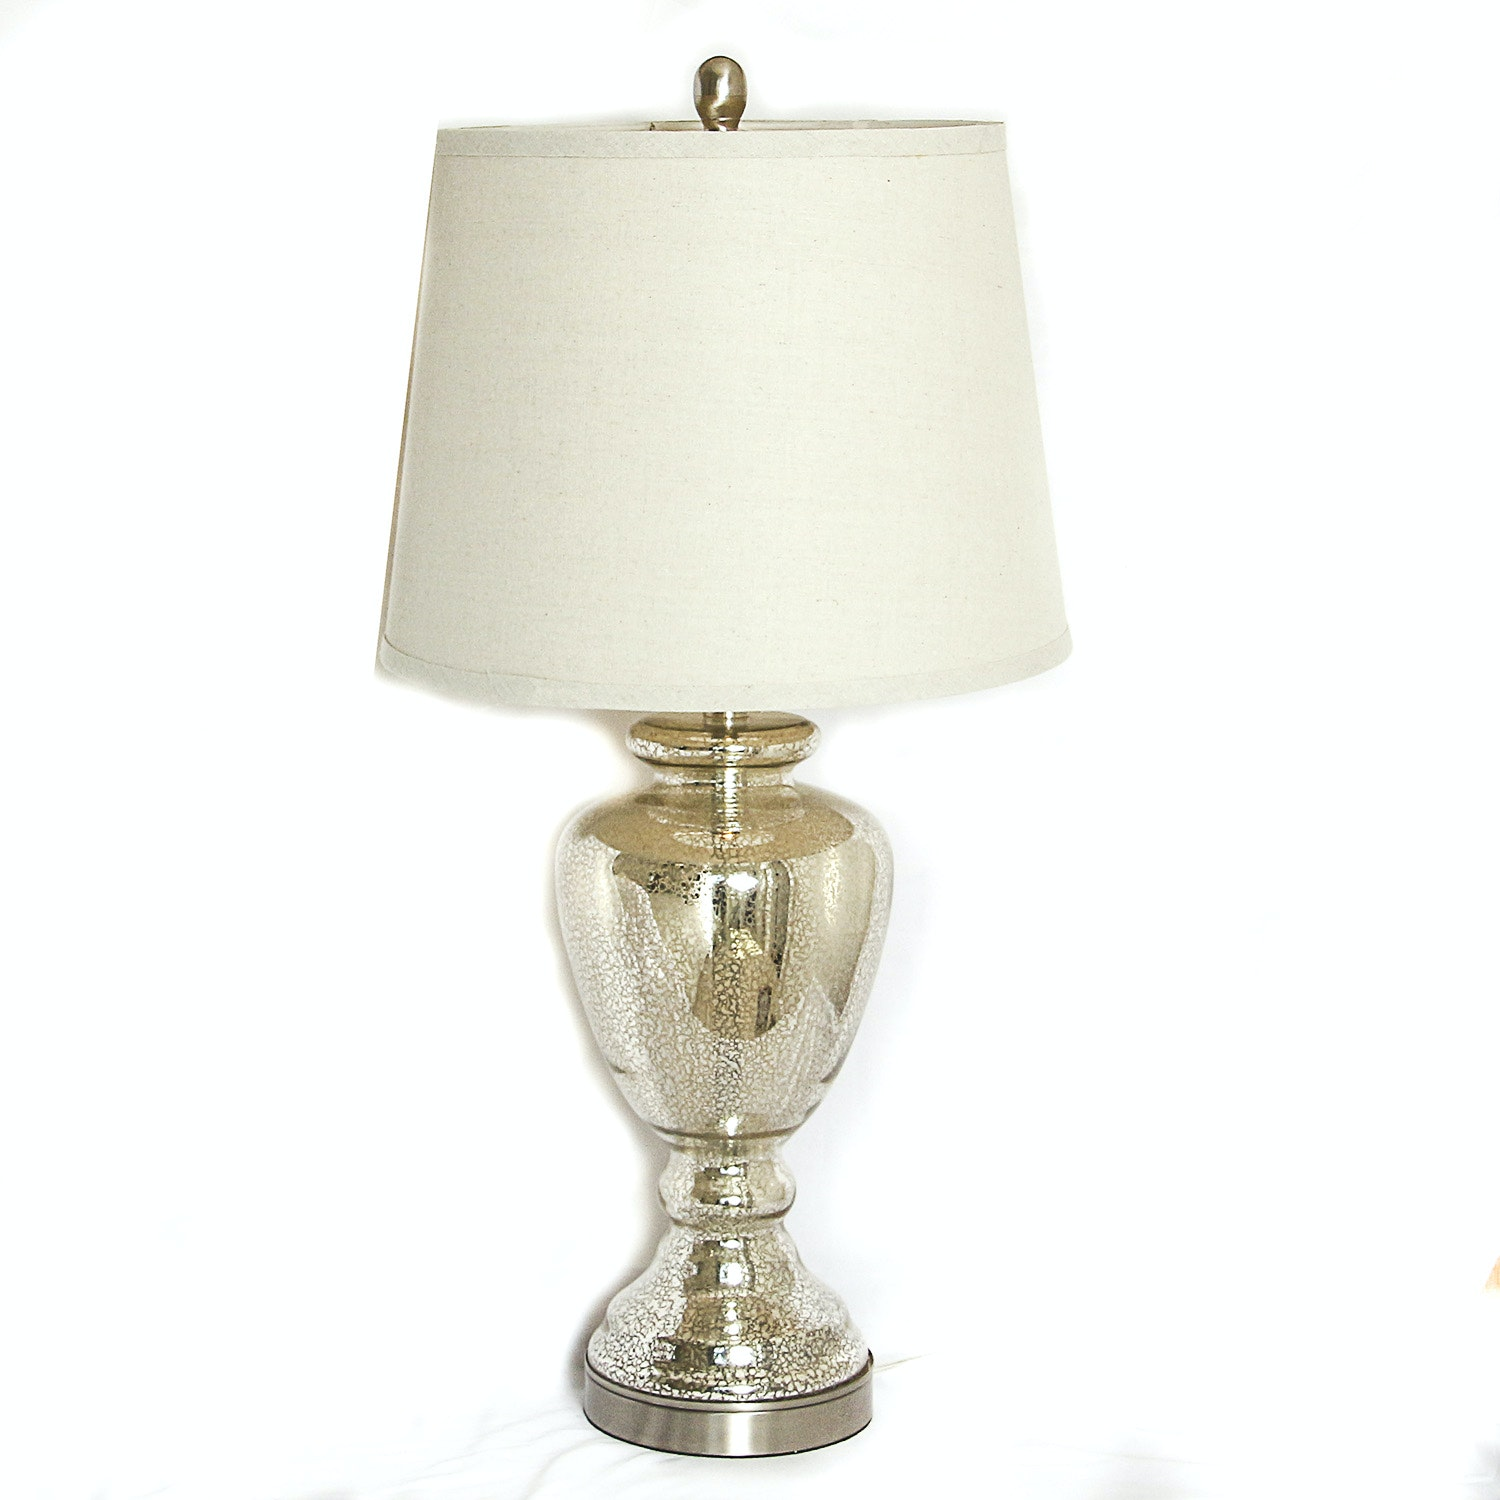 Glass Urn Style Table Lamp with Gold Tone Accents